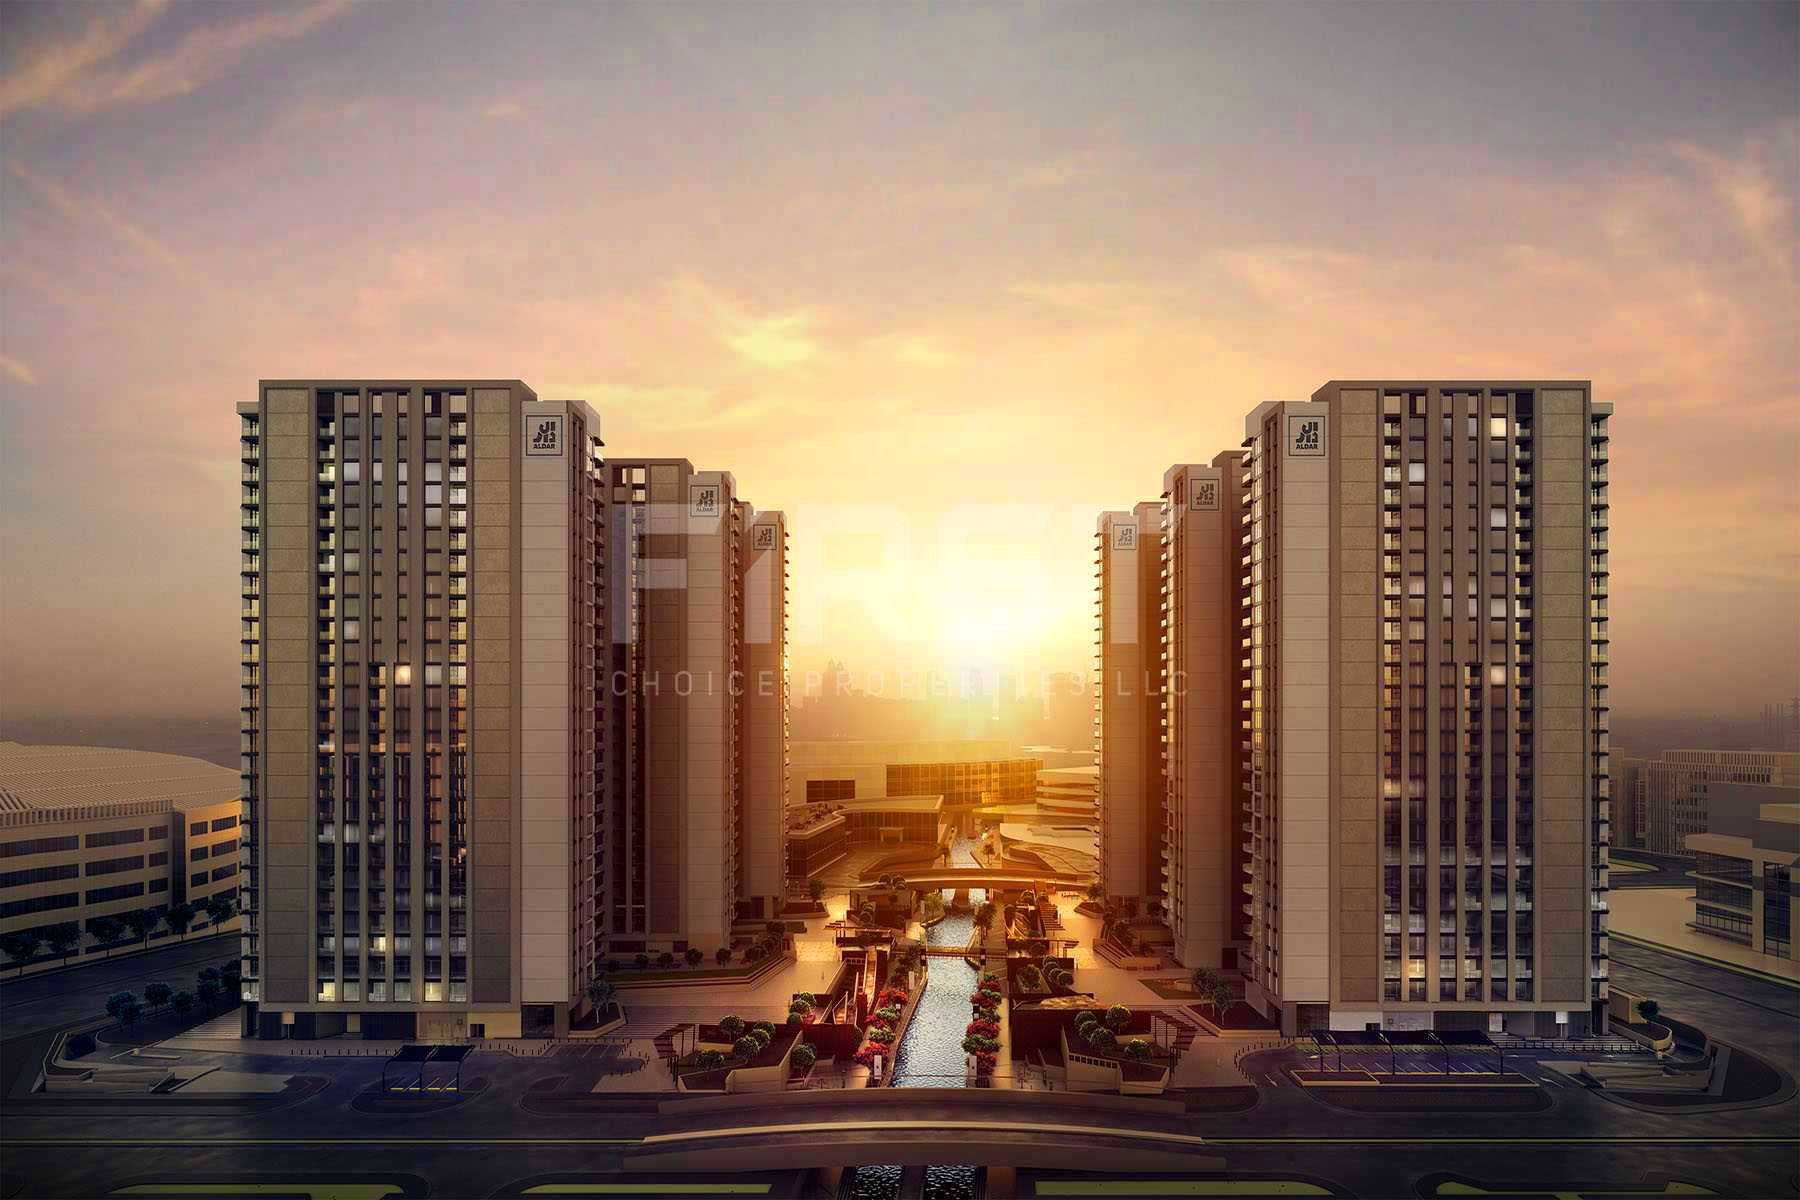 Studio,1 Bedroom, 2 Bedroom, 3 Bedroom,Apartment in The Bridges,Shams Abu Dhabi,Al Reem Island- Abu Dhabi-UAE (12).jpg